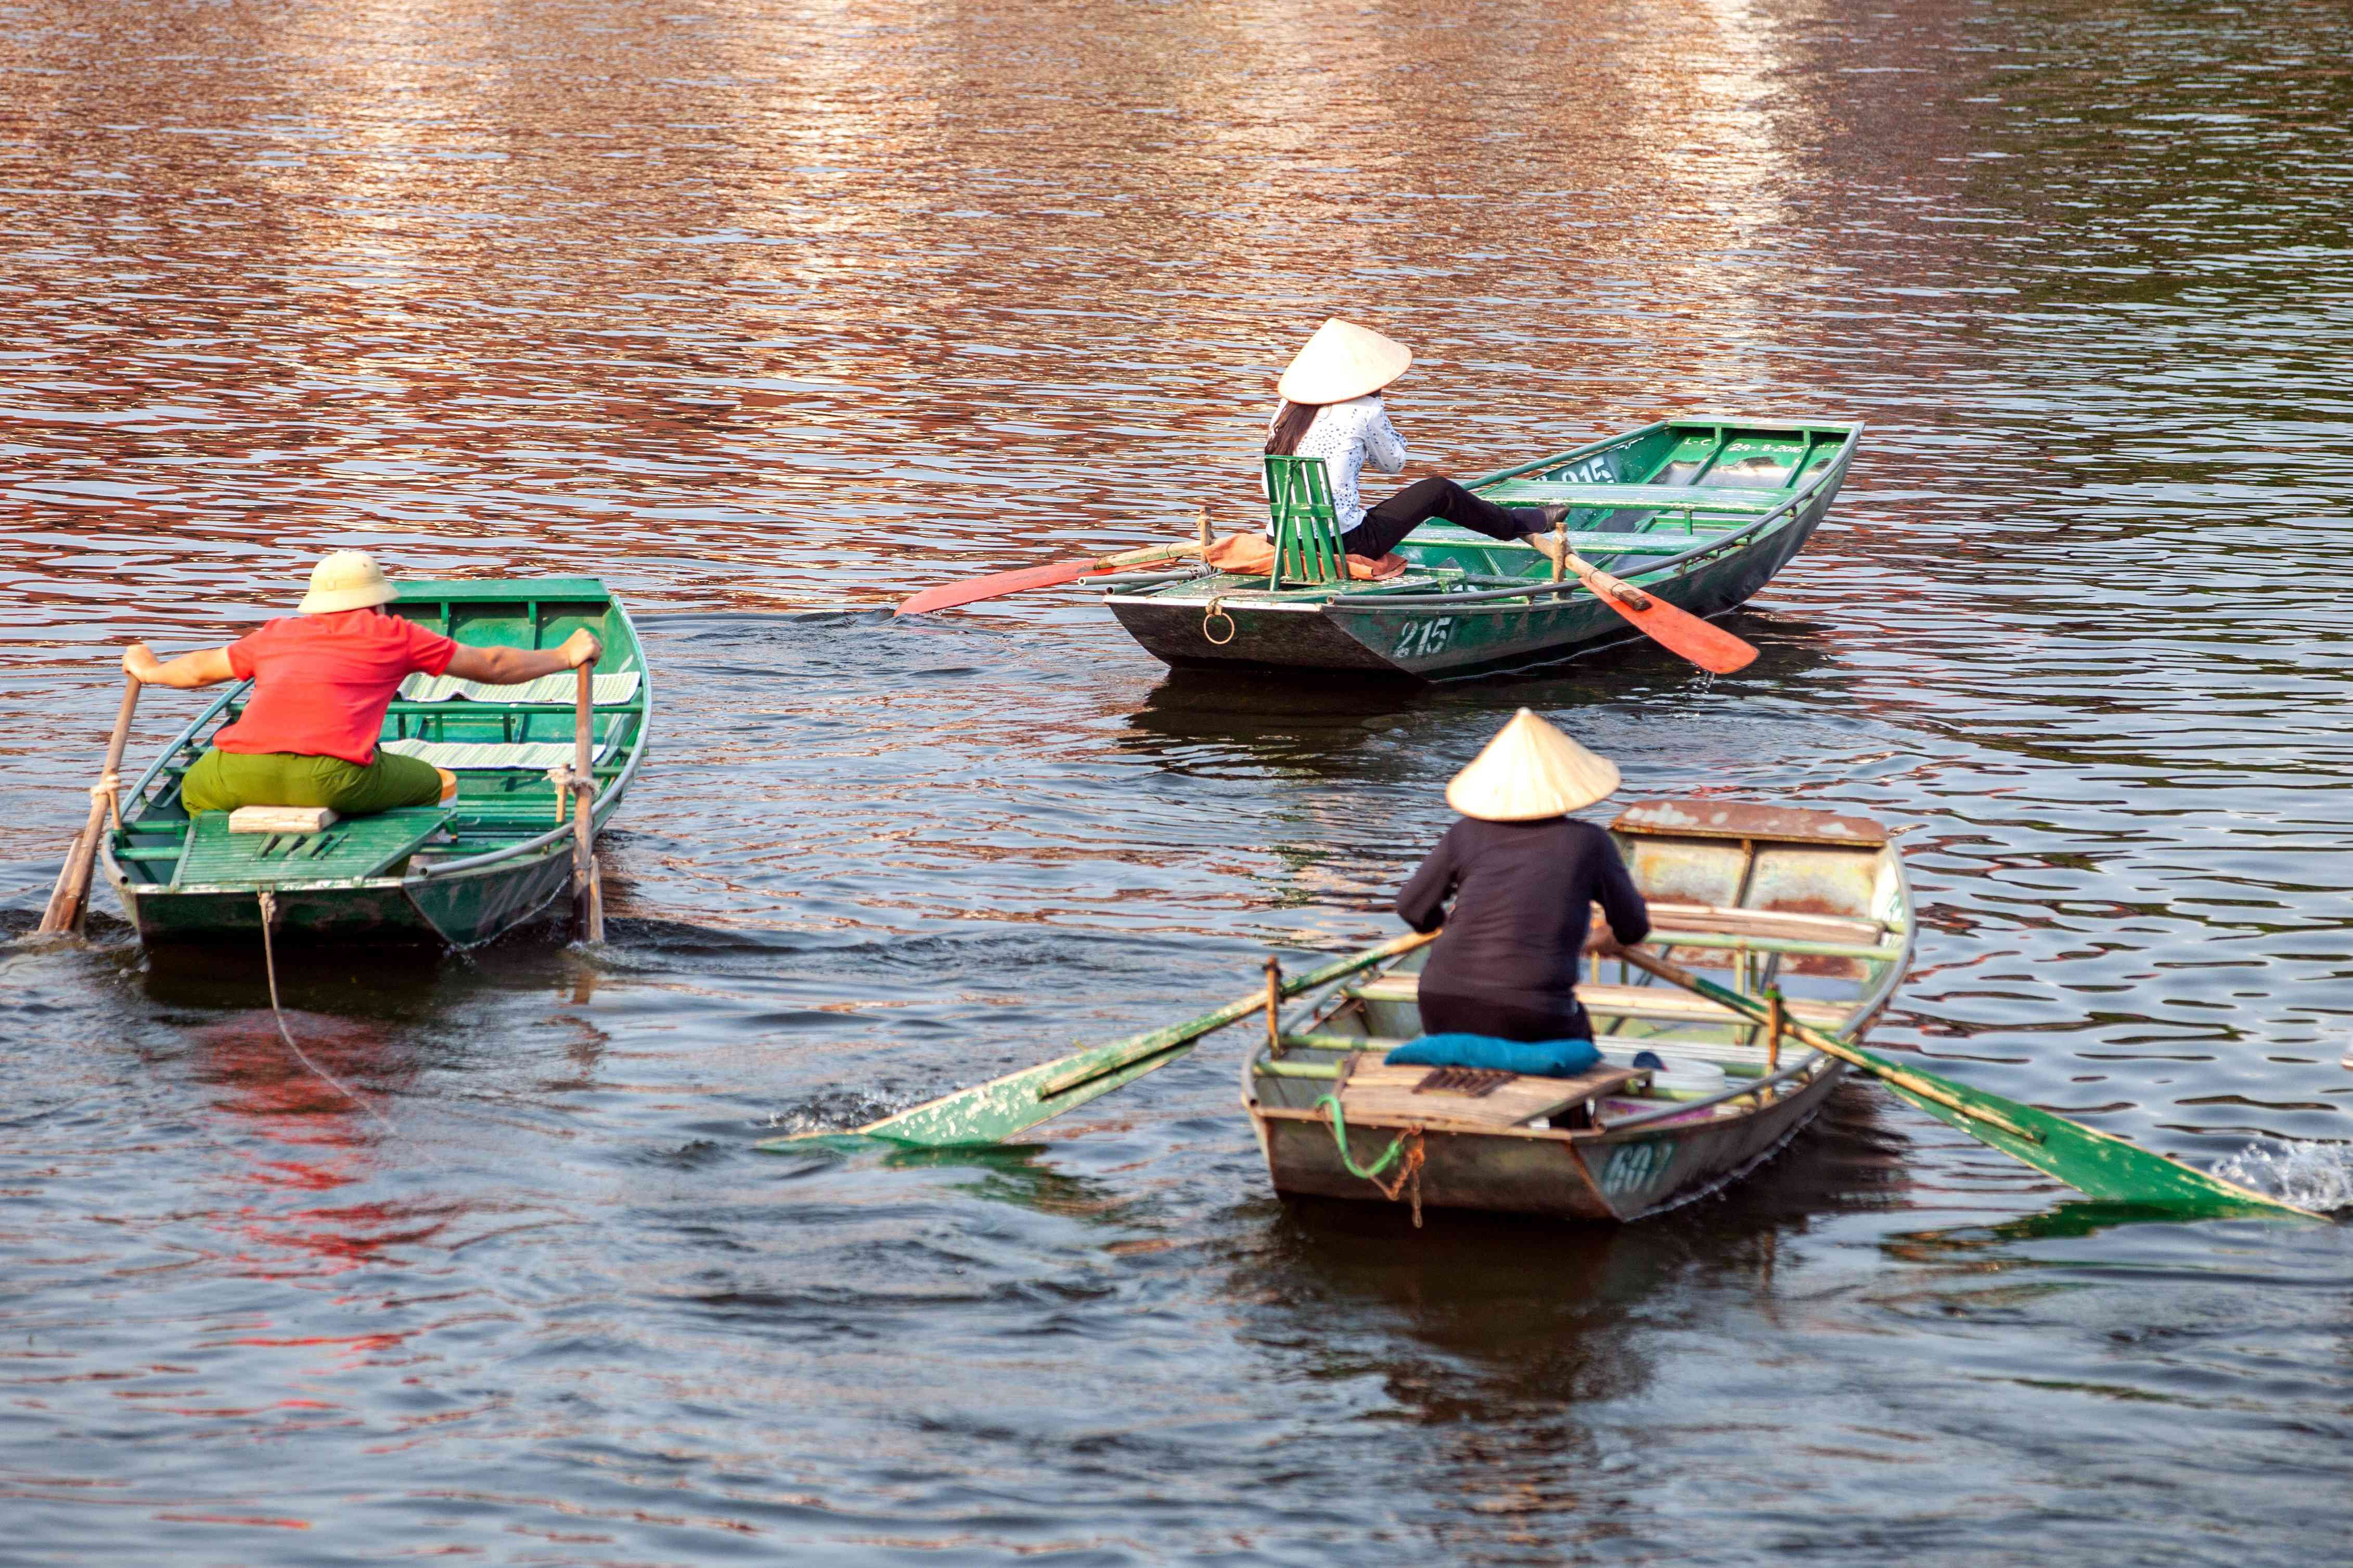 Paddlers on simple rowboats in Vietnam traverse the Red River Delta